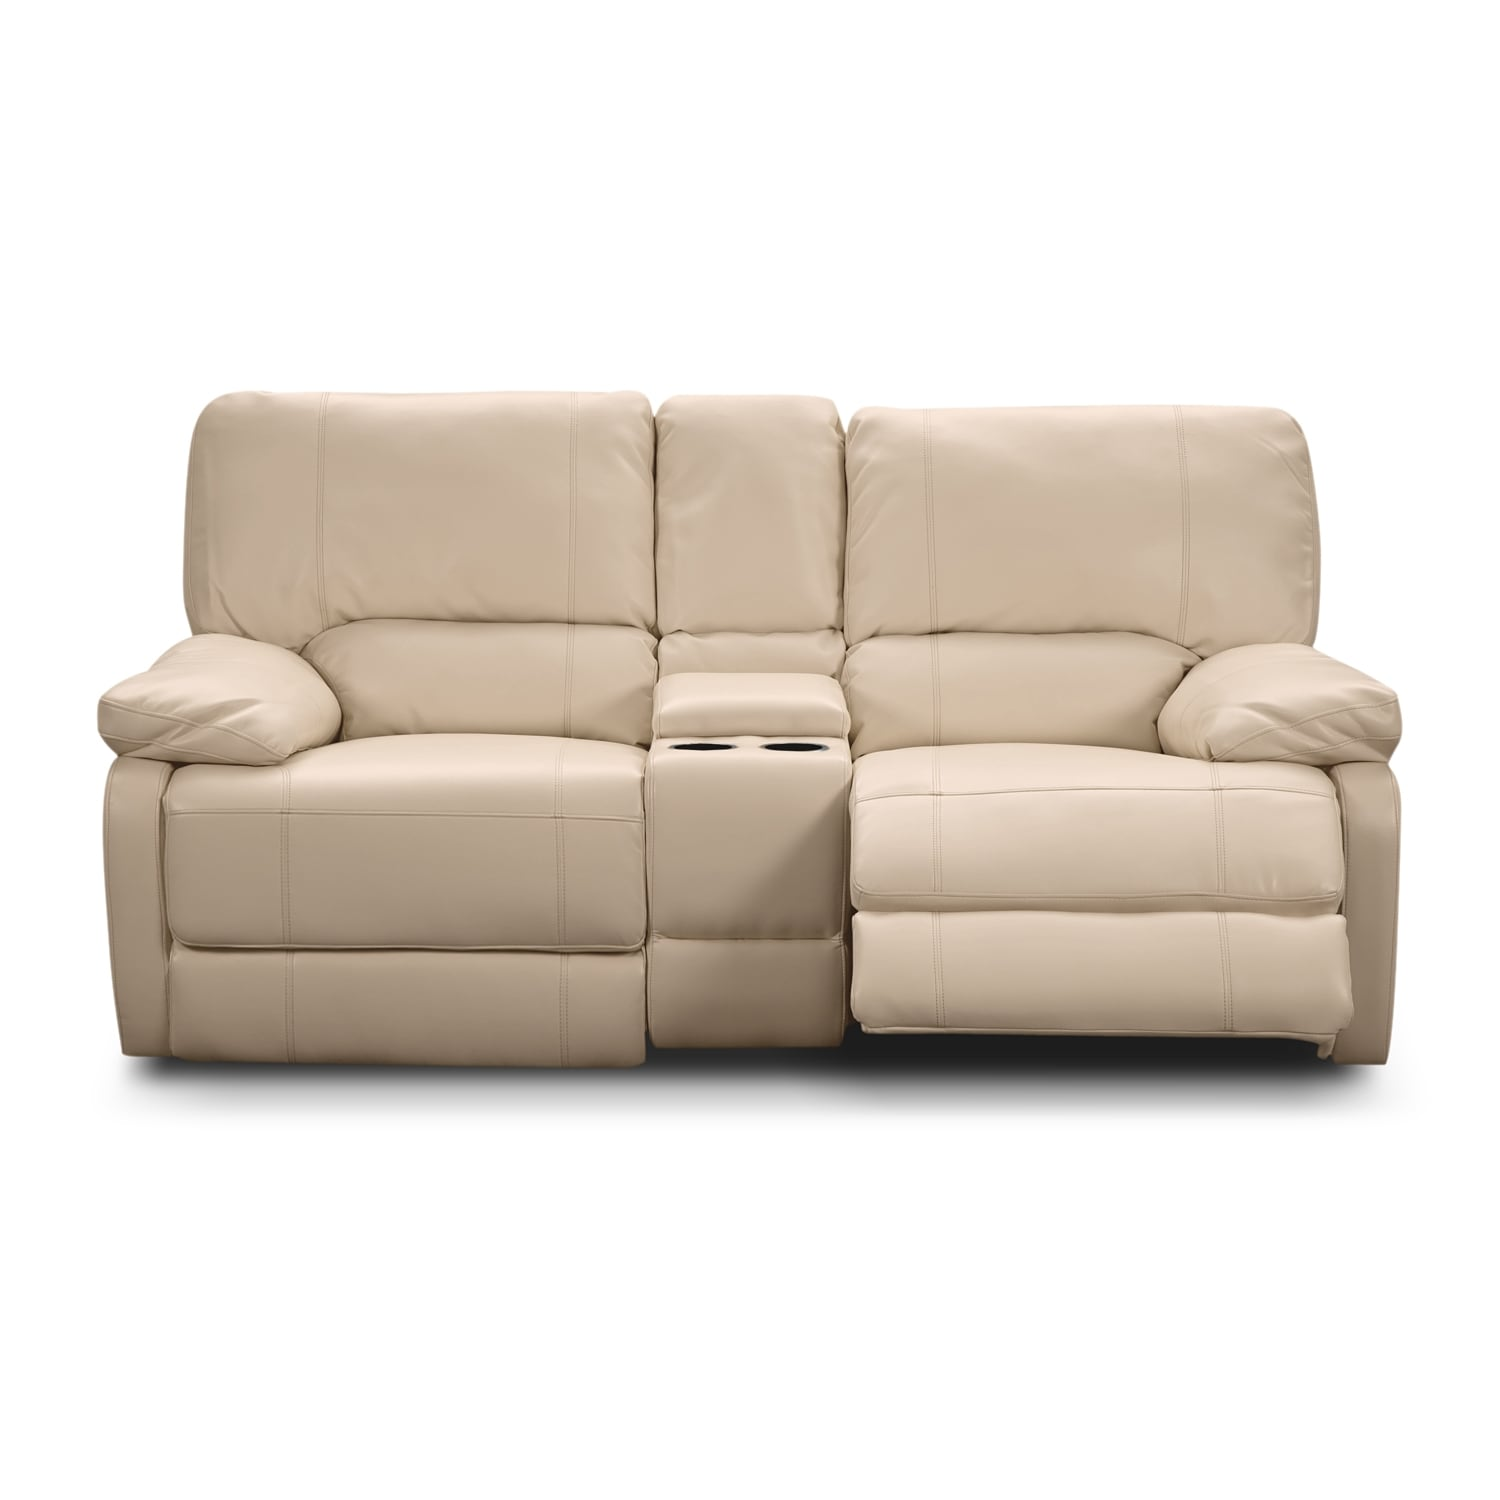 Coronado leather power reclining loveseat value city Power reclining sofas and loveseats